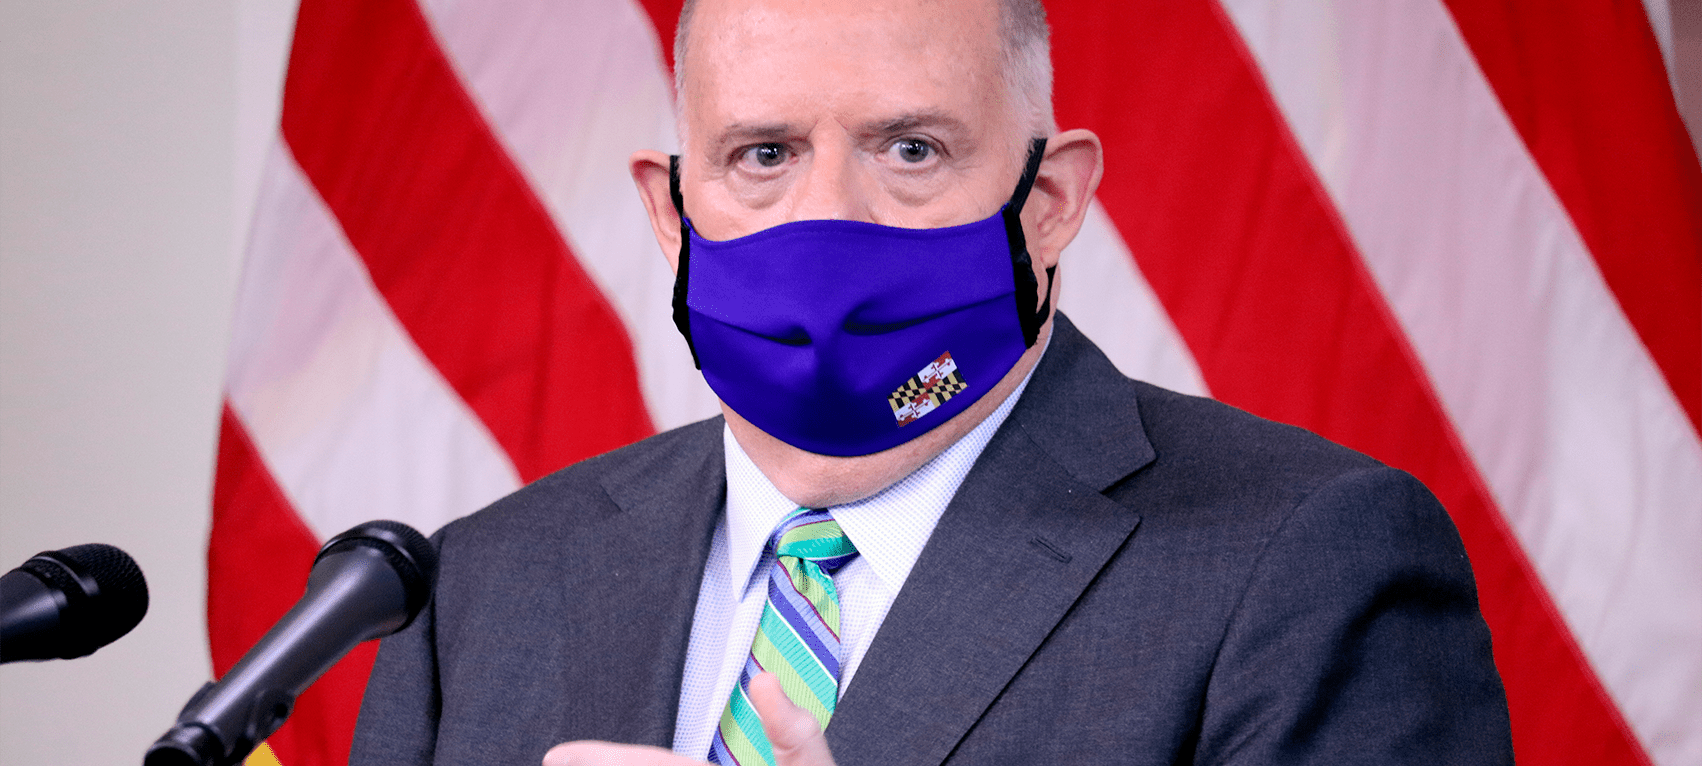 https://www.gambleonline.co/app/uploads/2021/03/Governor-Larry-Hogan-1.png